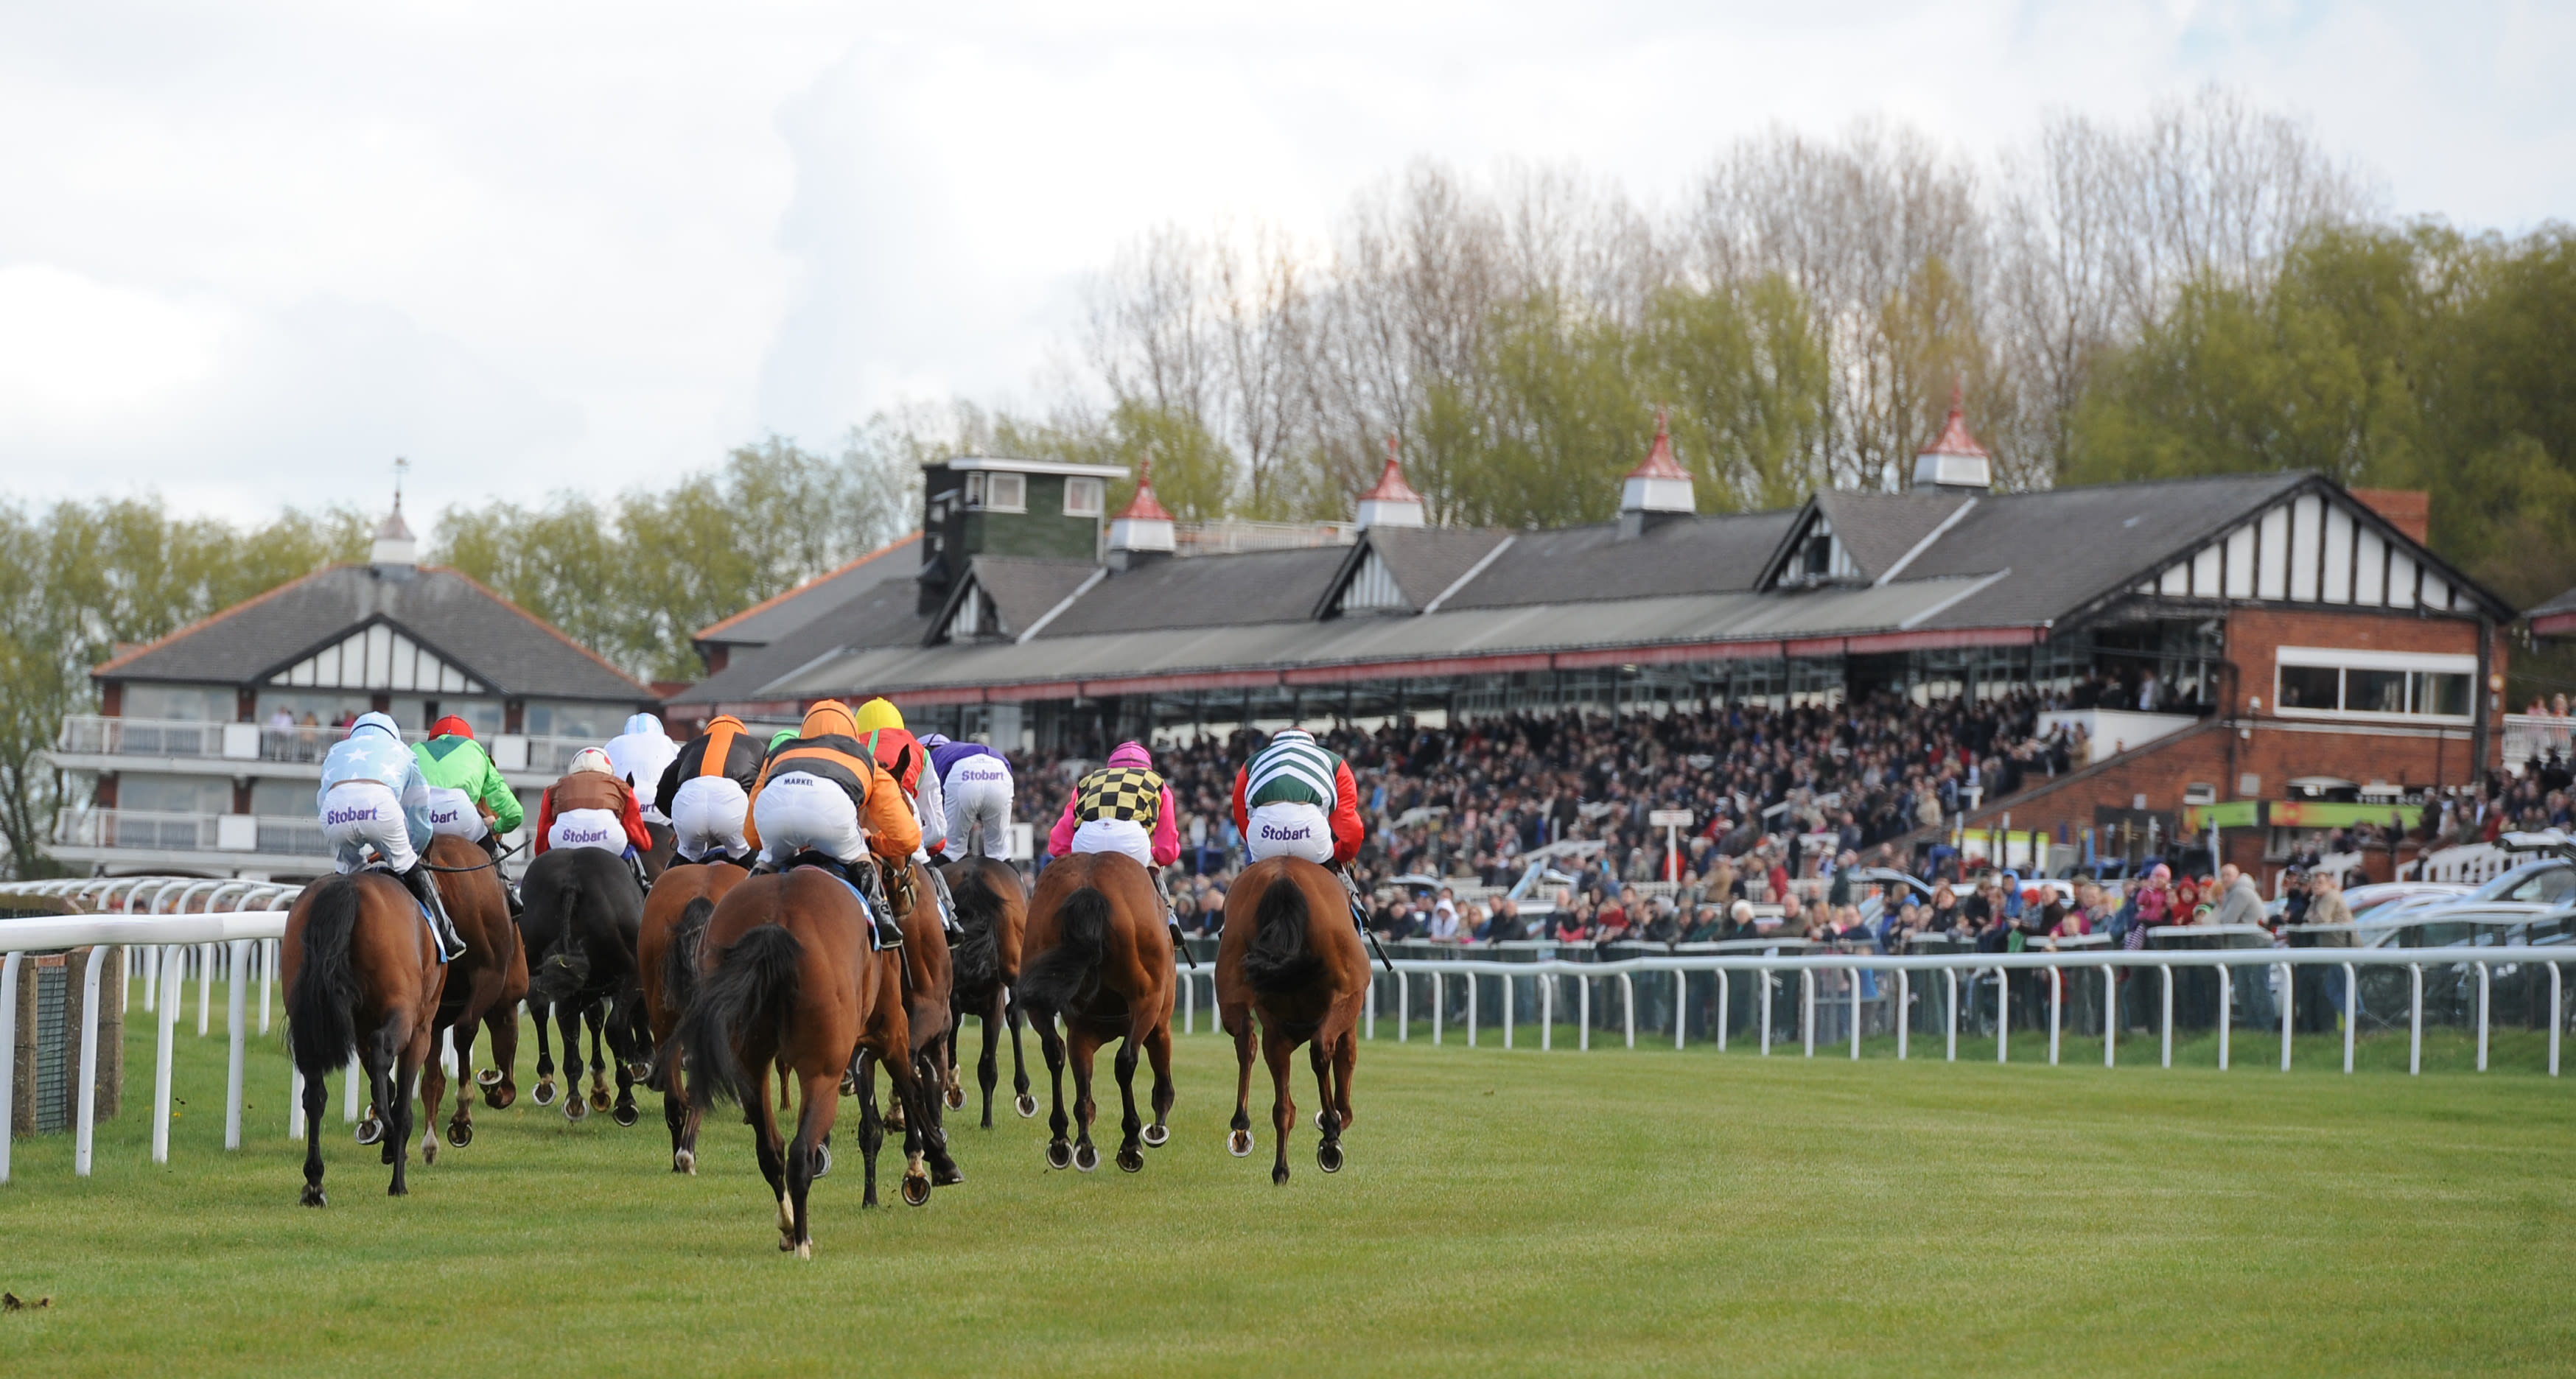 Pontefract is set to stage racing on June 10 and 15